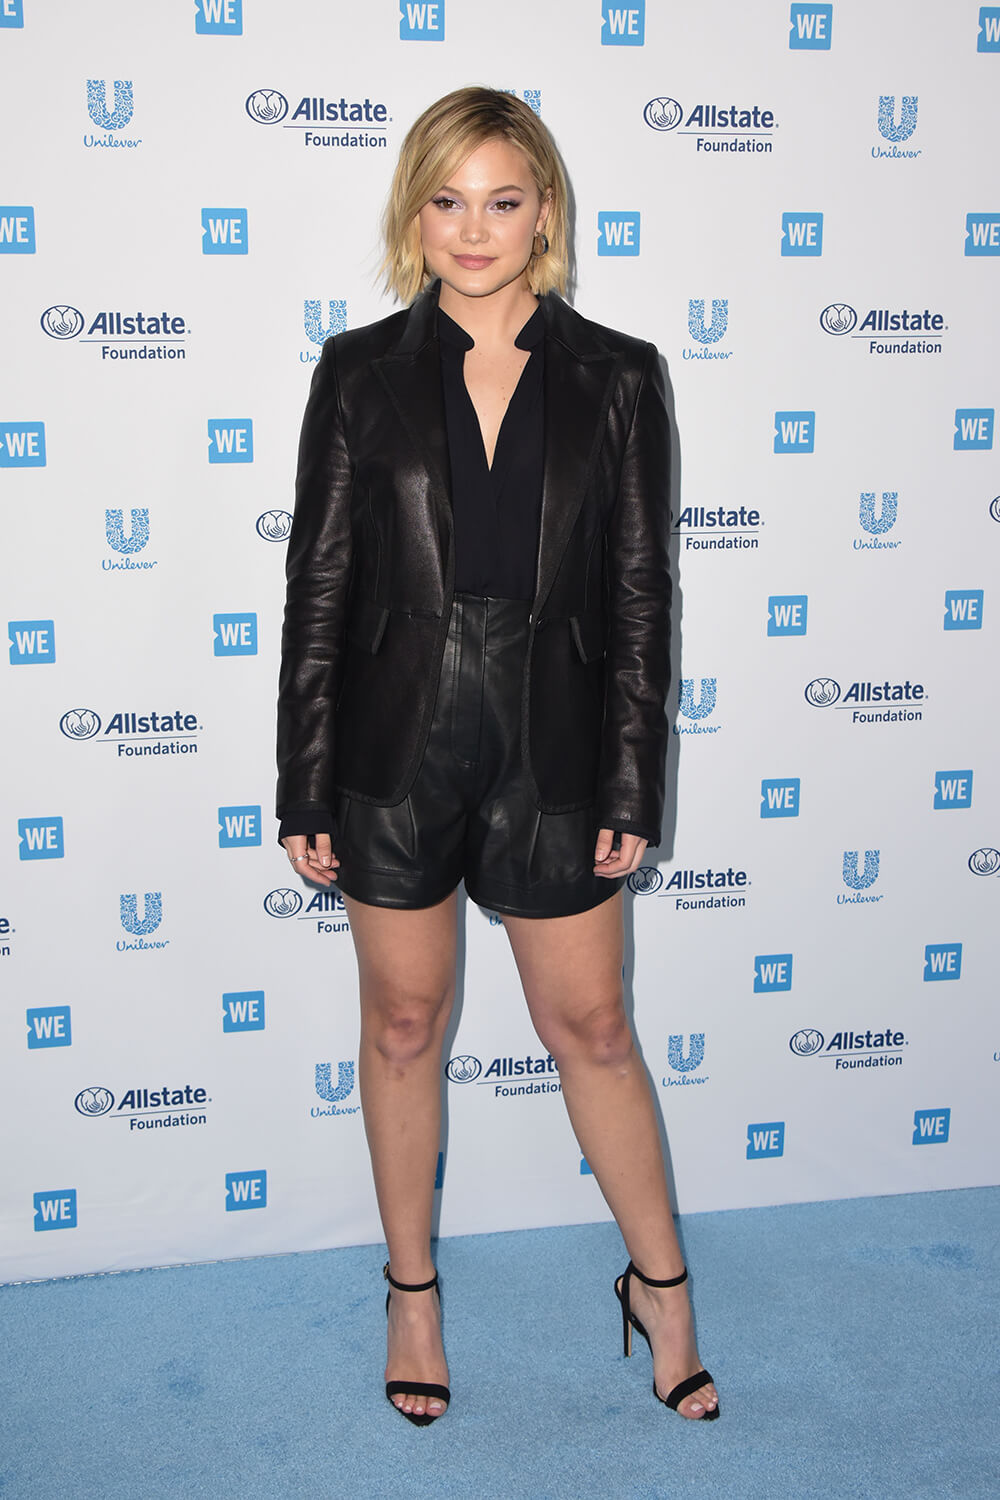 Olivia Holt attends WE Day California 2019 at the Forum in Inglewood 4/25/19